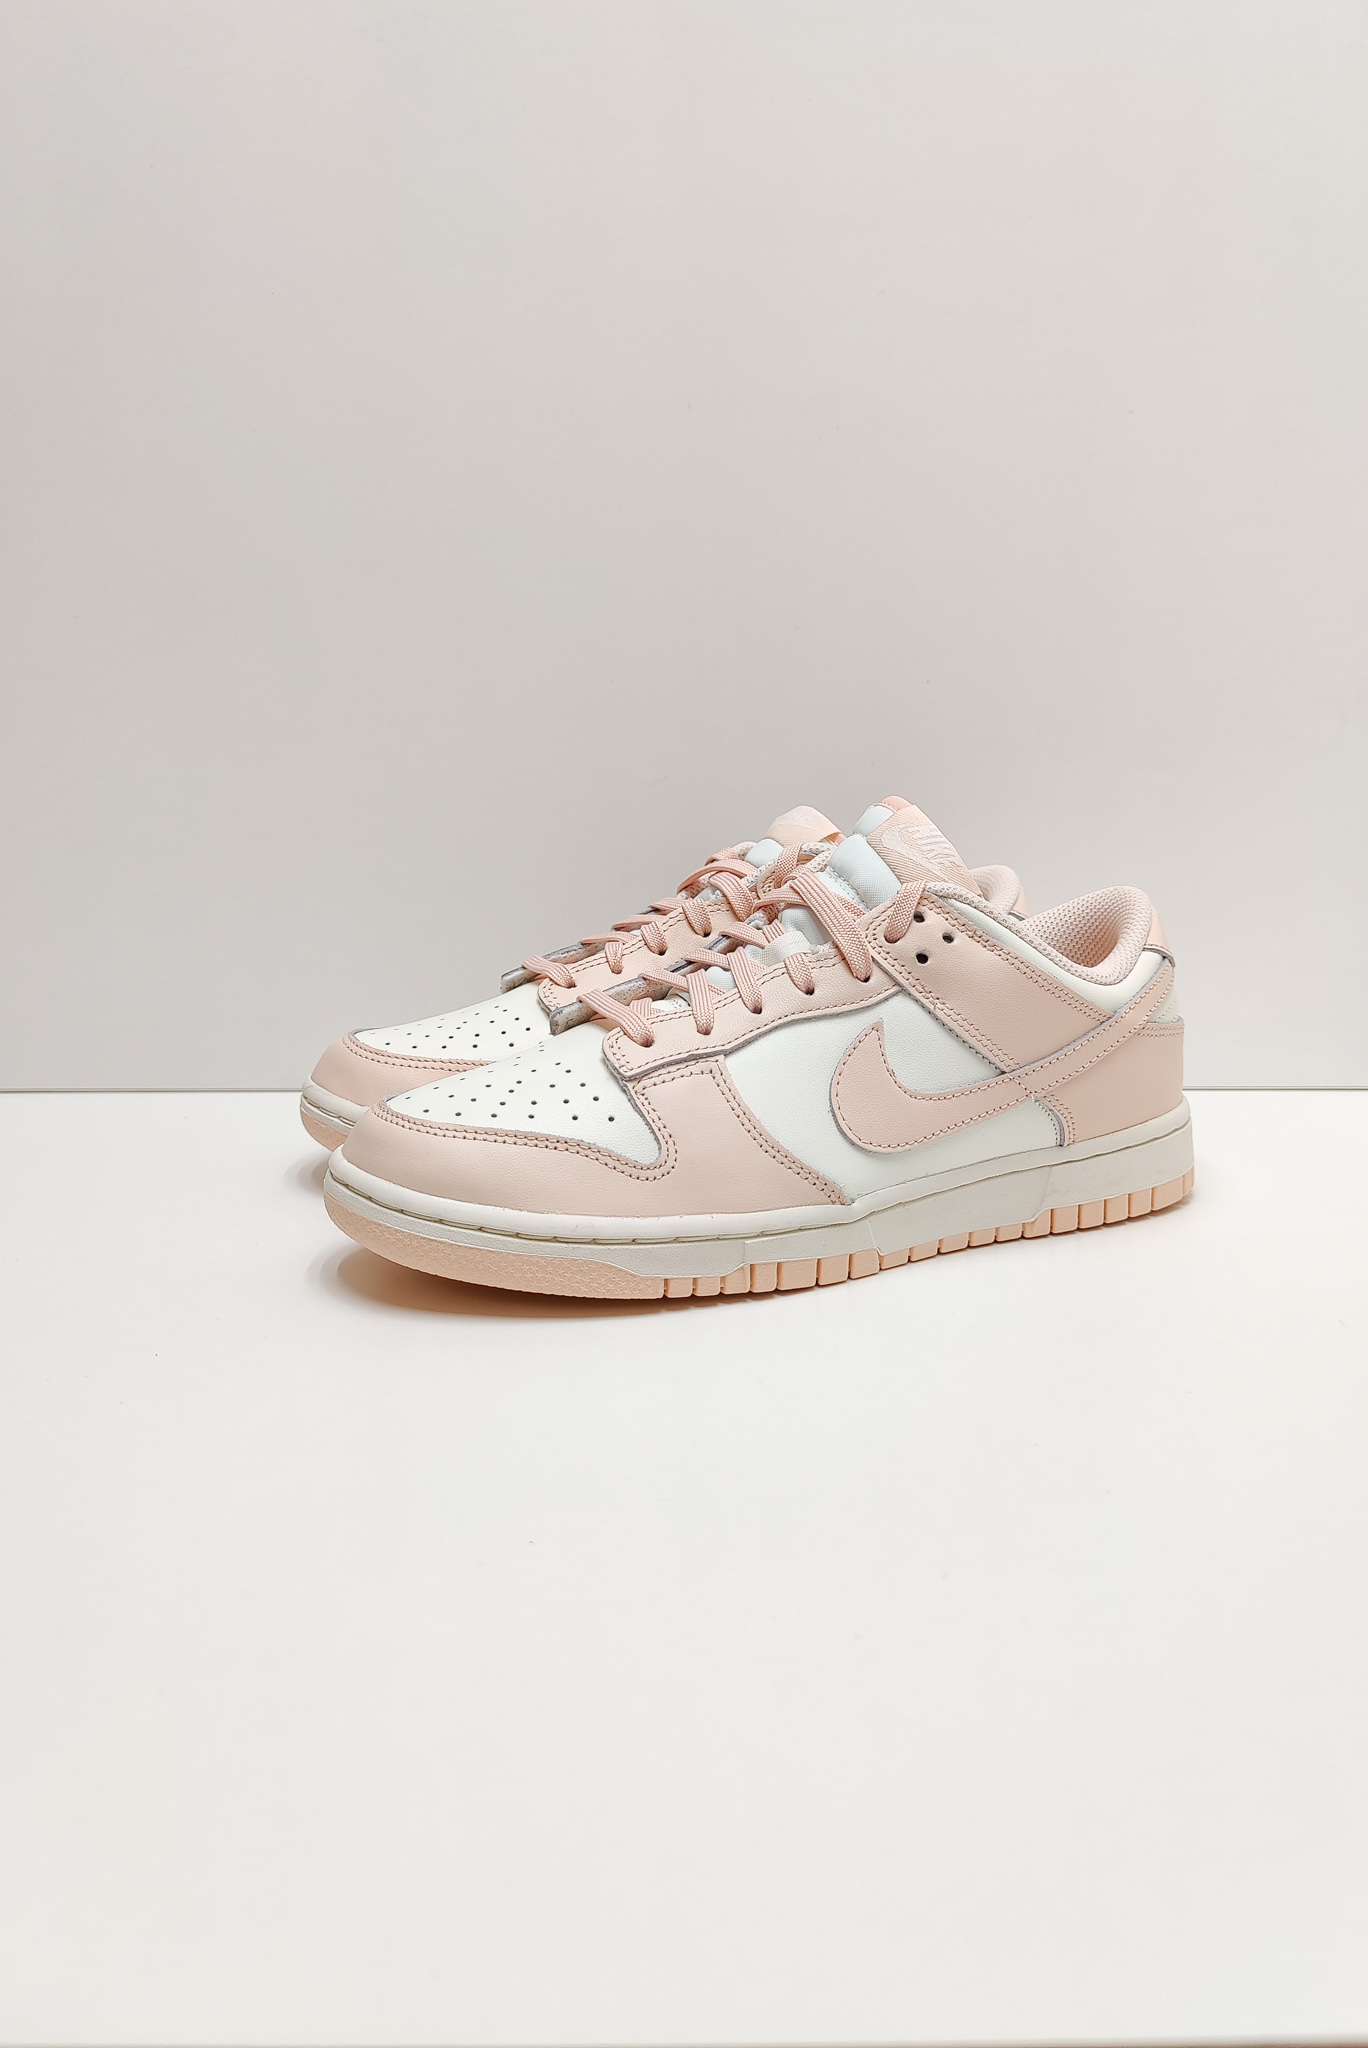 Nike Dunk Low Orange Pearl